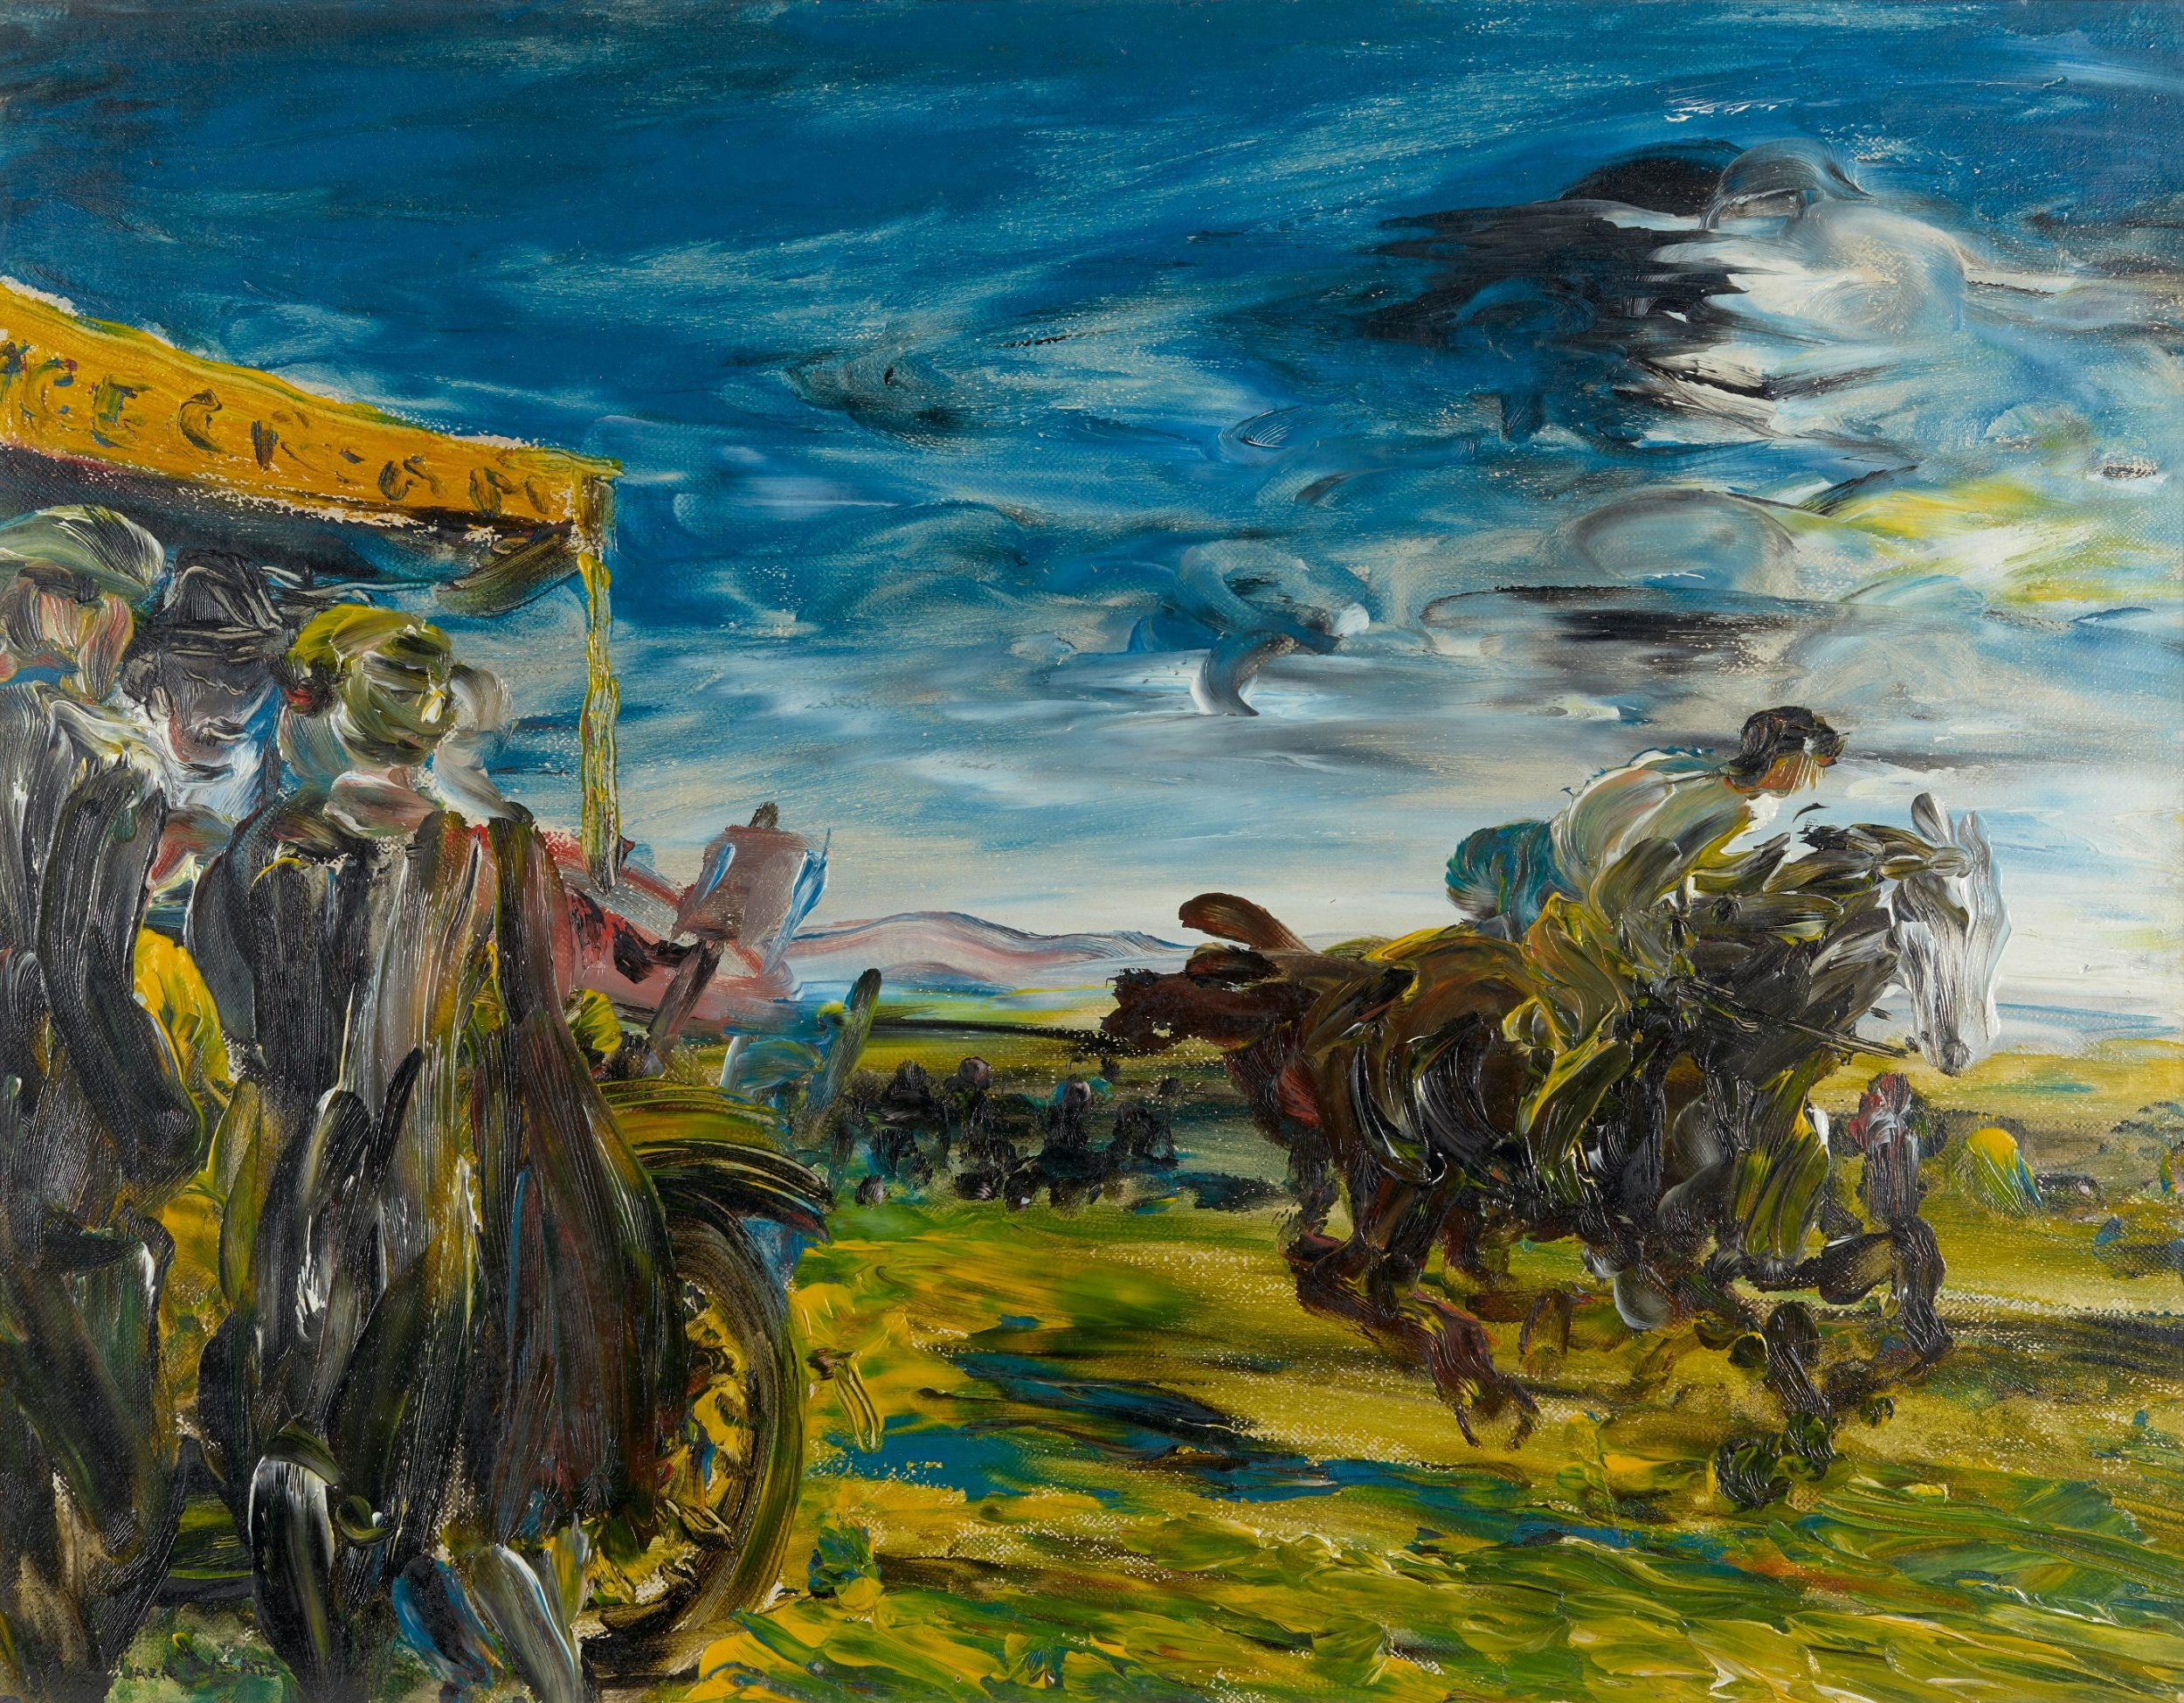 Jack B. Yeats, The Flapping Meeting, 1926, © Estate of Jack B. Yeats, DACS London / IVARO Dublin, 2019. Private Collection. Photo: Denis Mortell.